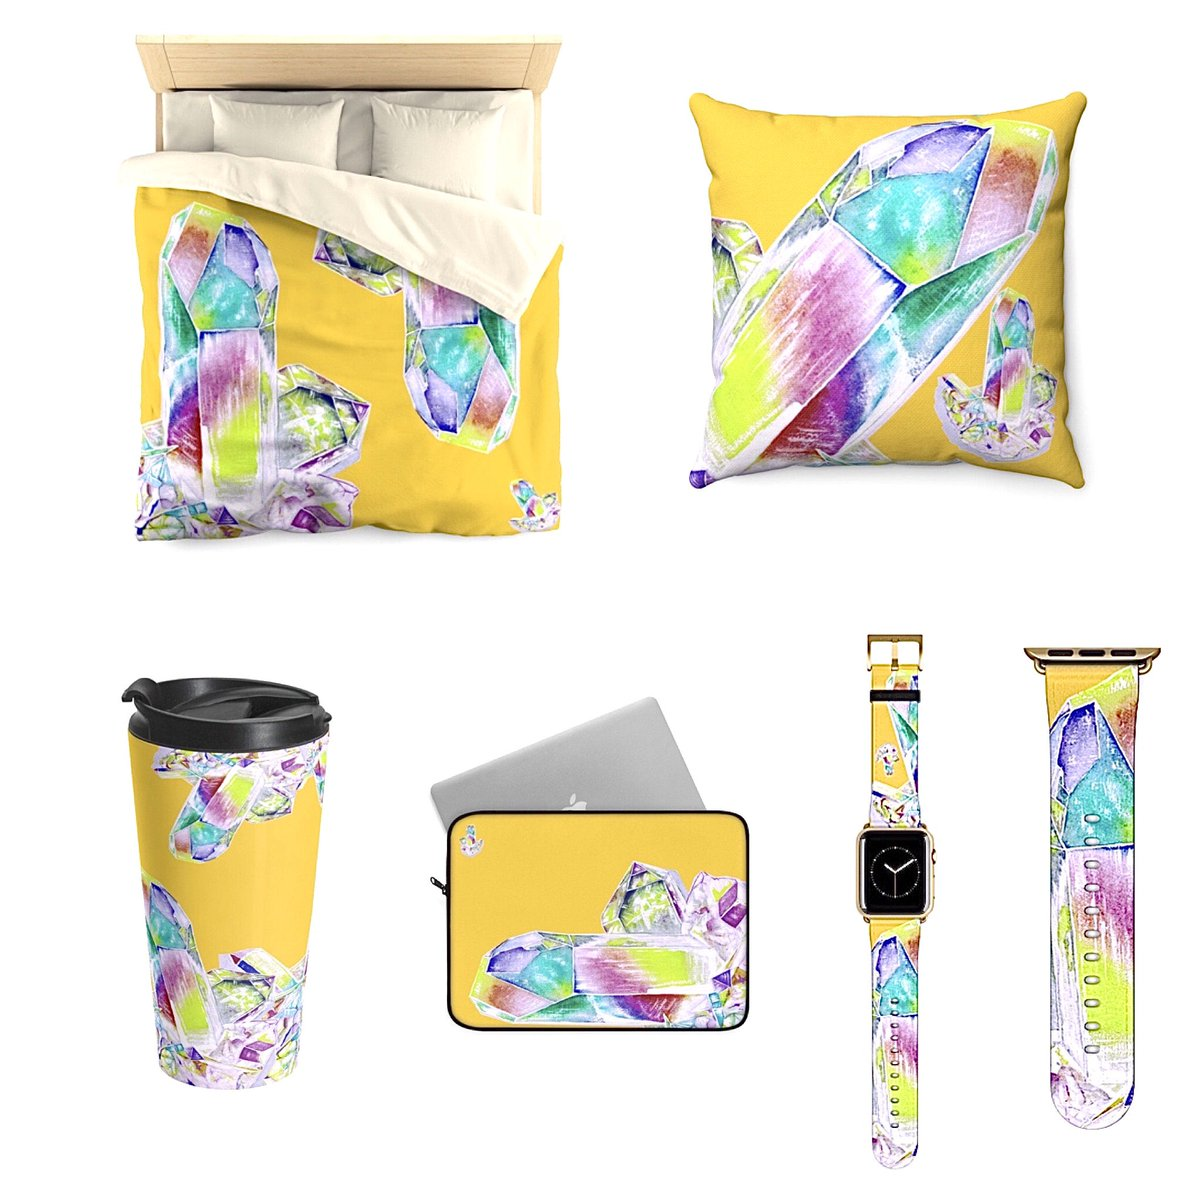 Mochila  multicolor unisex backpack white multicolor quarz , sports accessory, bag,studios, bag, wallet, made to order, watercolor …http://illustration.miyoarte.patternbyetsy.com/listing/817316…pic.twitter.com/CZdOtlNtwk